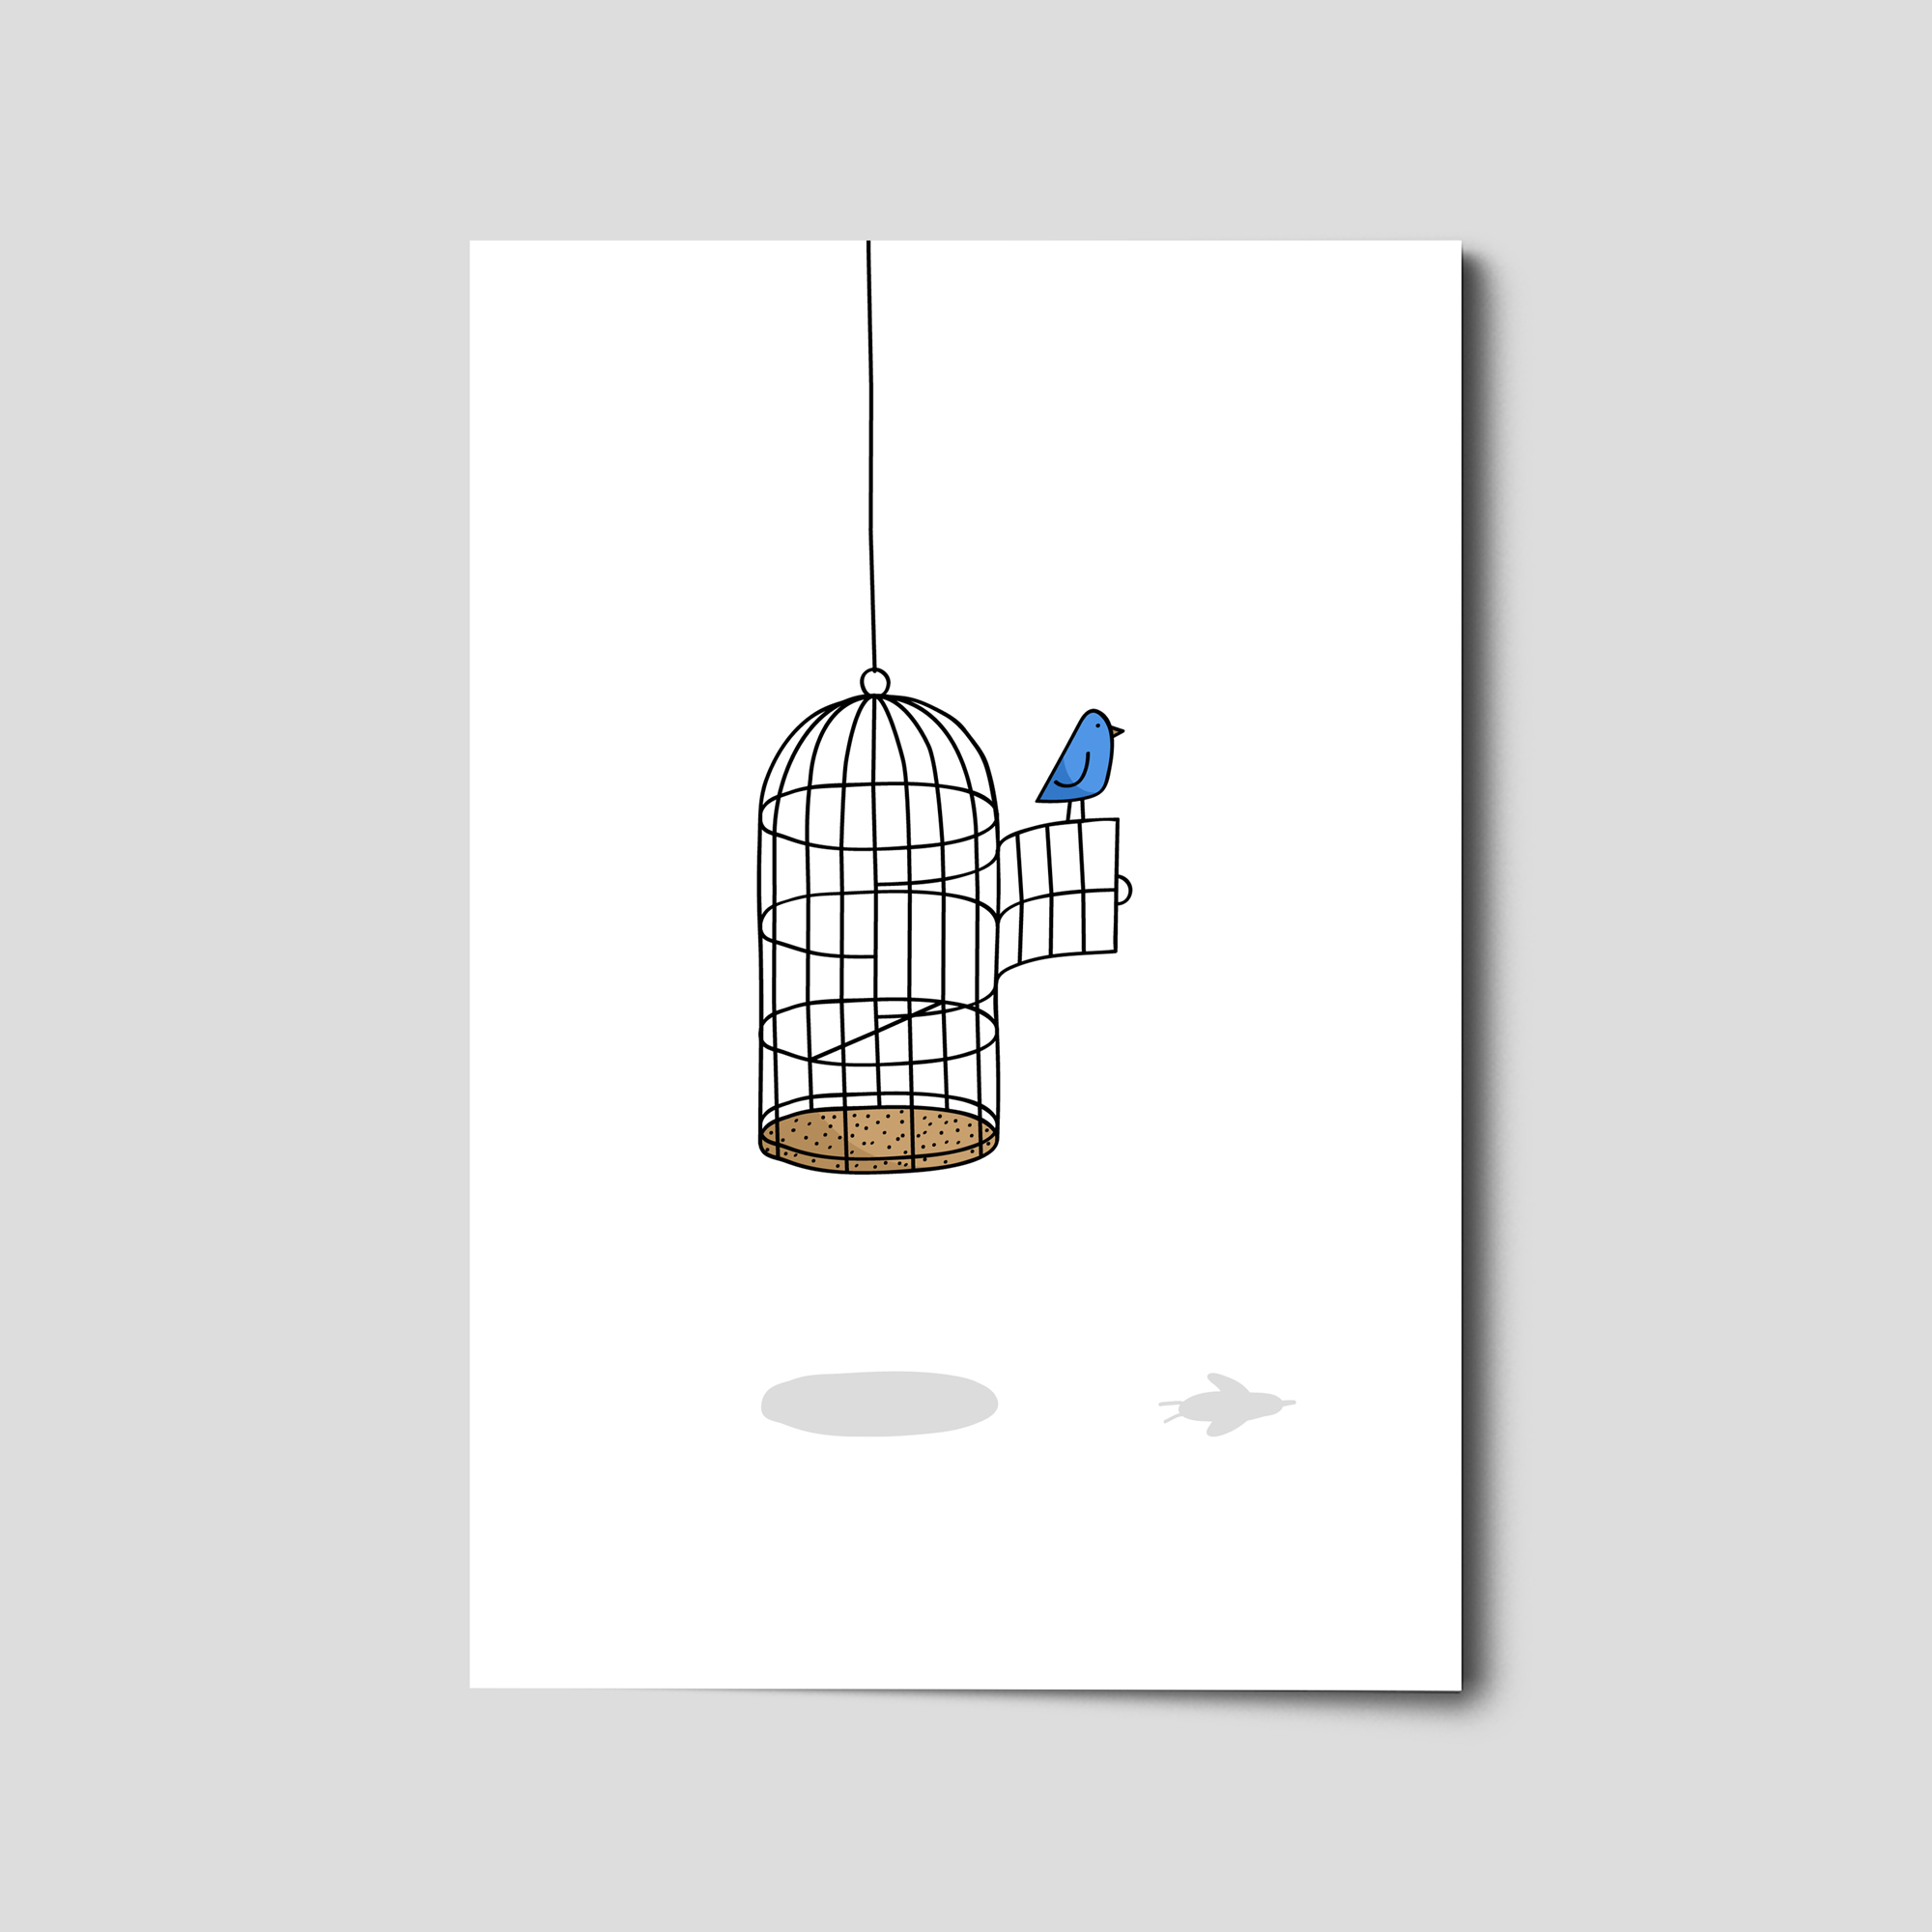 Hidden Primate® 006 The Bird and the Cage